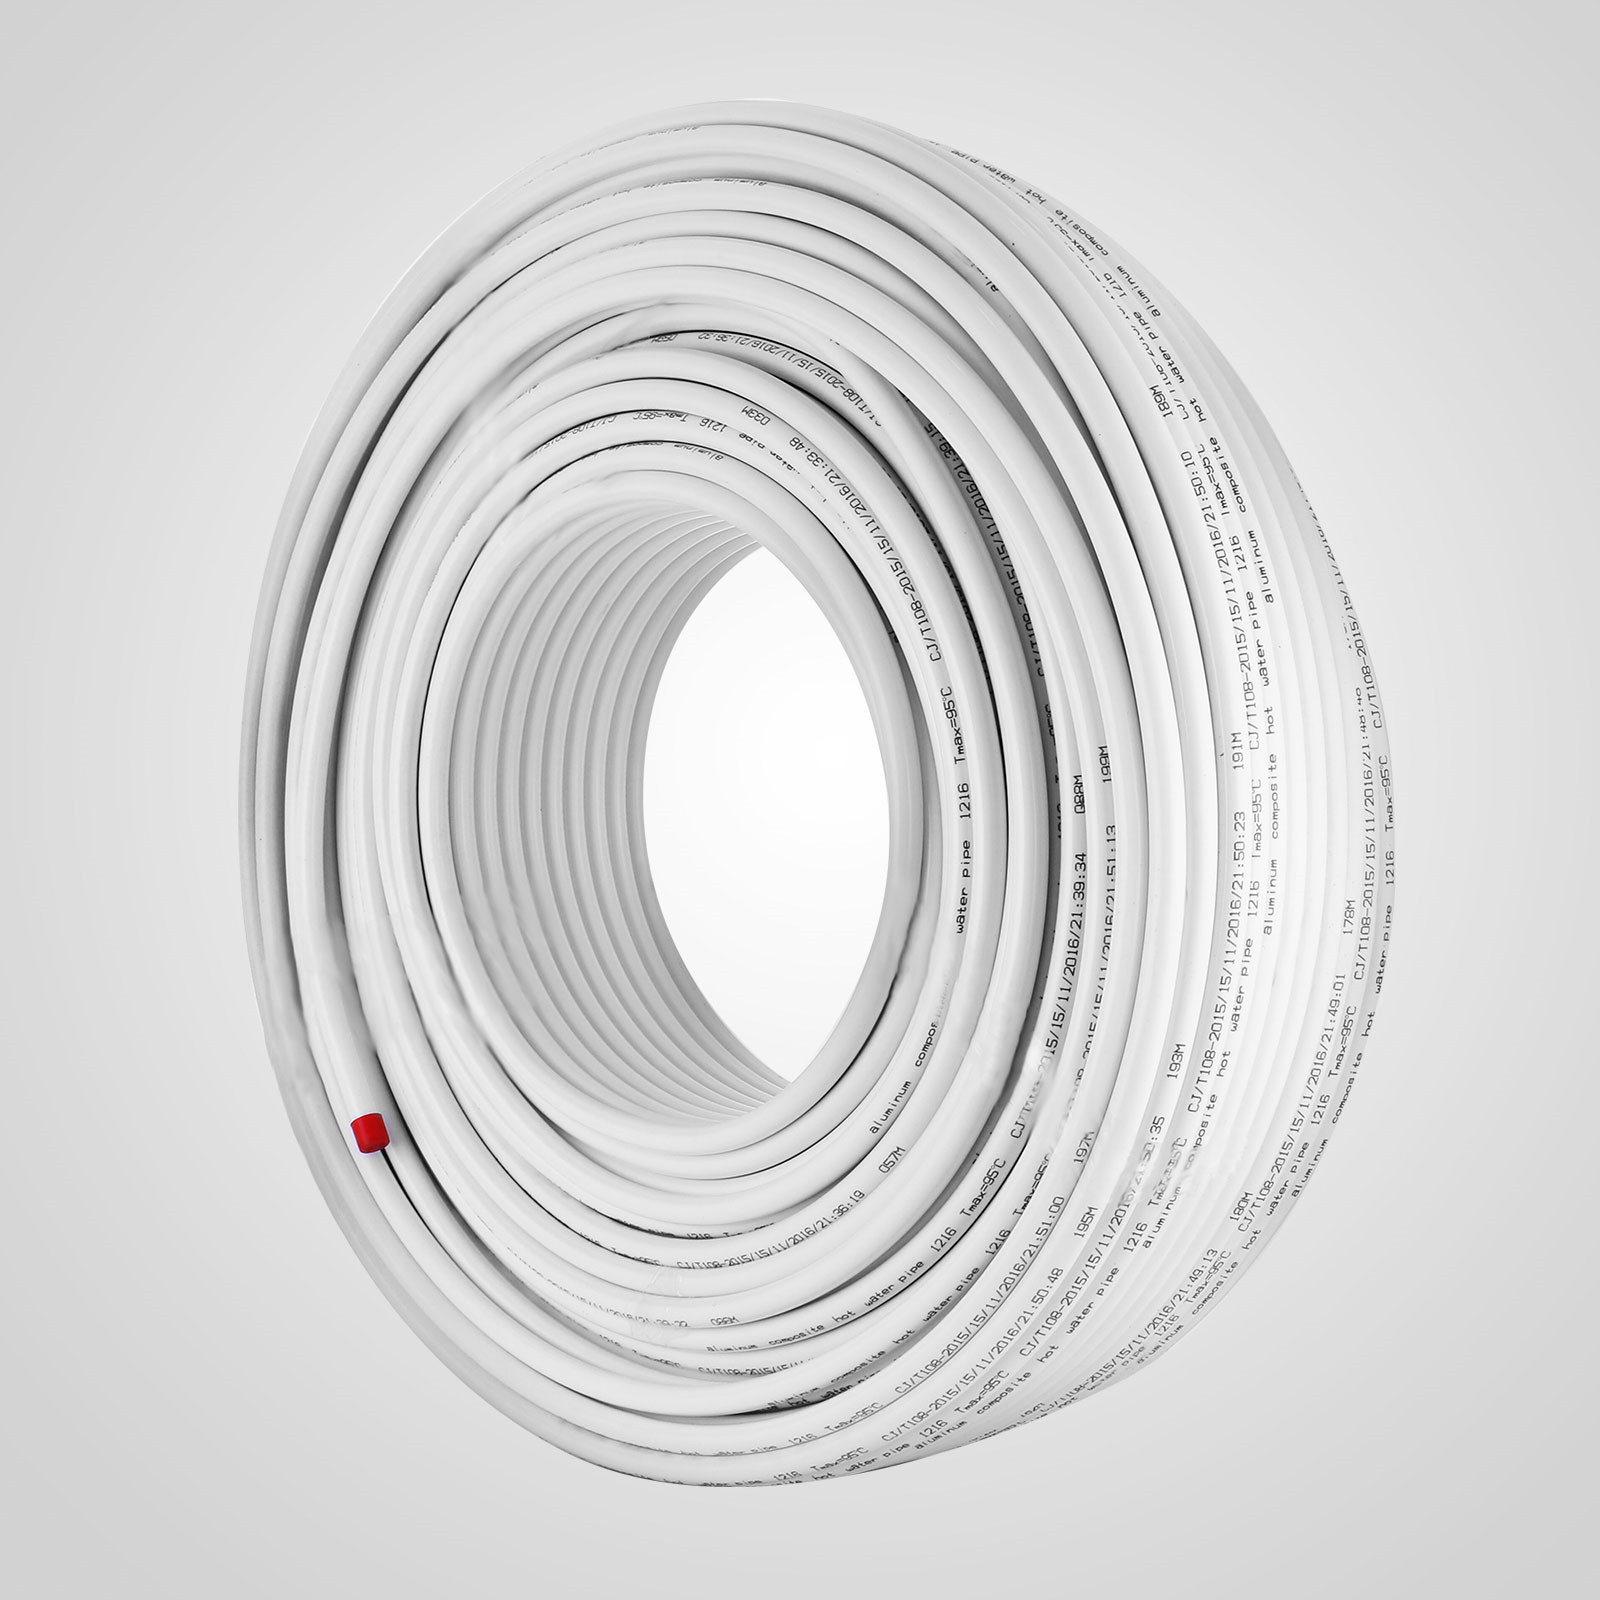 Details about 100 200 300ft Pex tubing Underfloor heating pipe UFH pipe  rolls